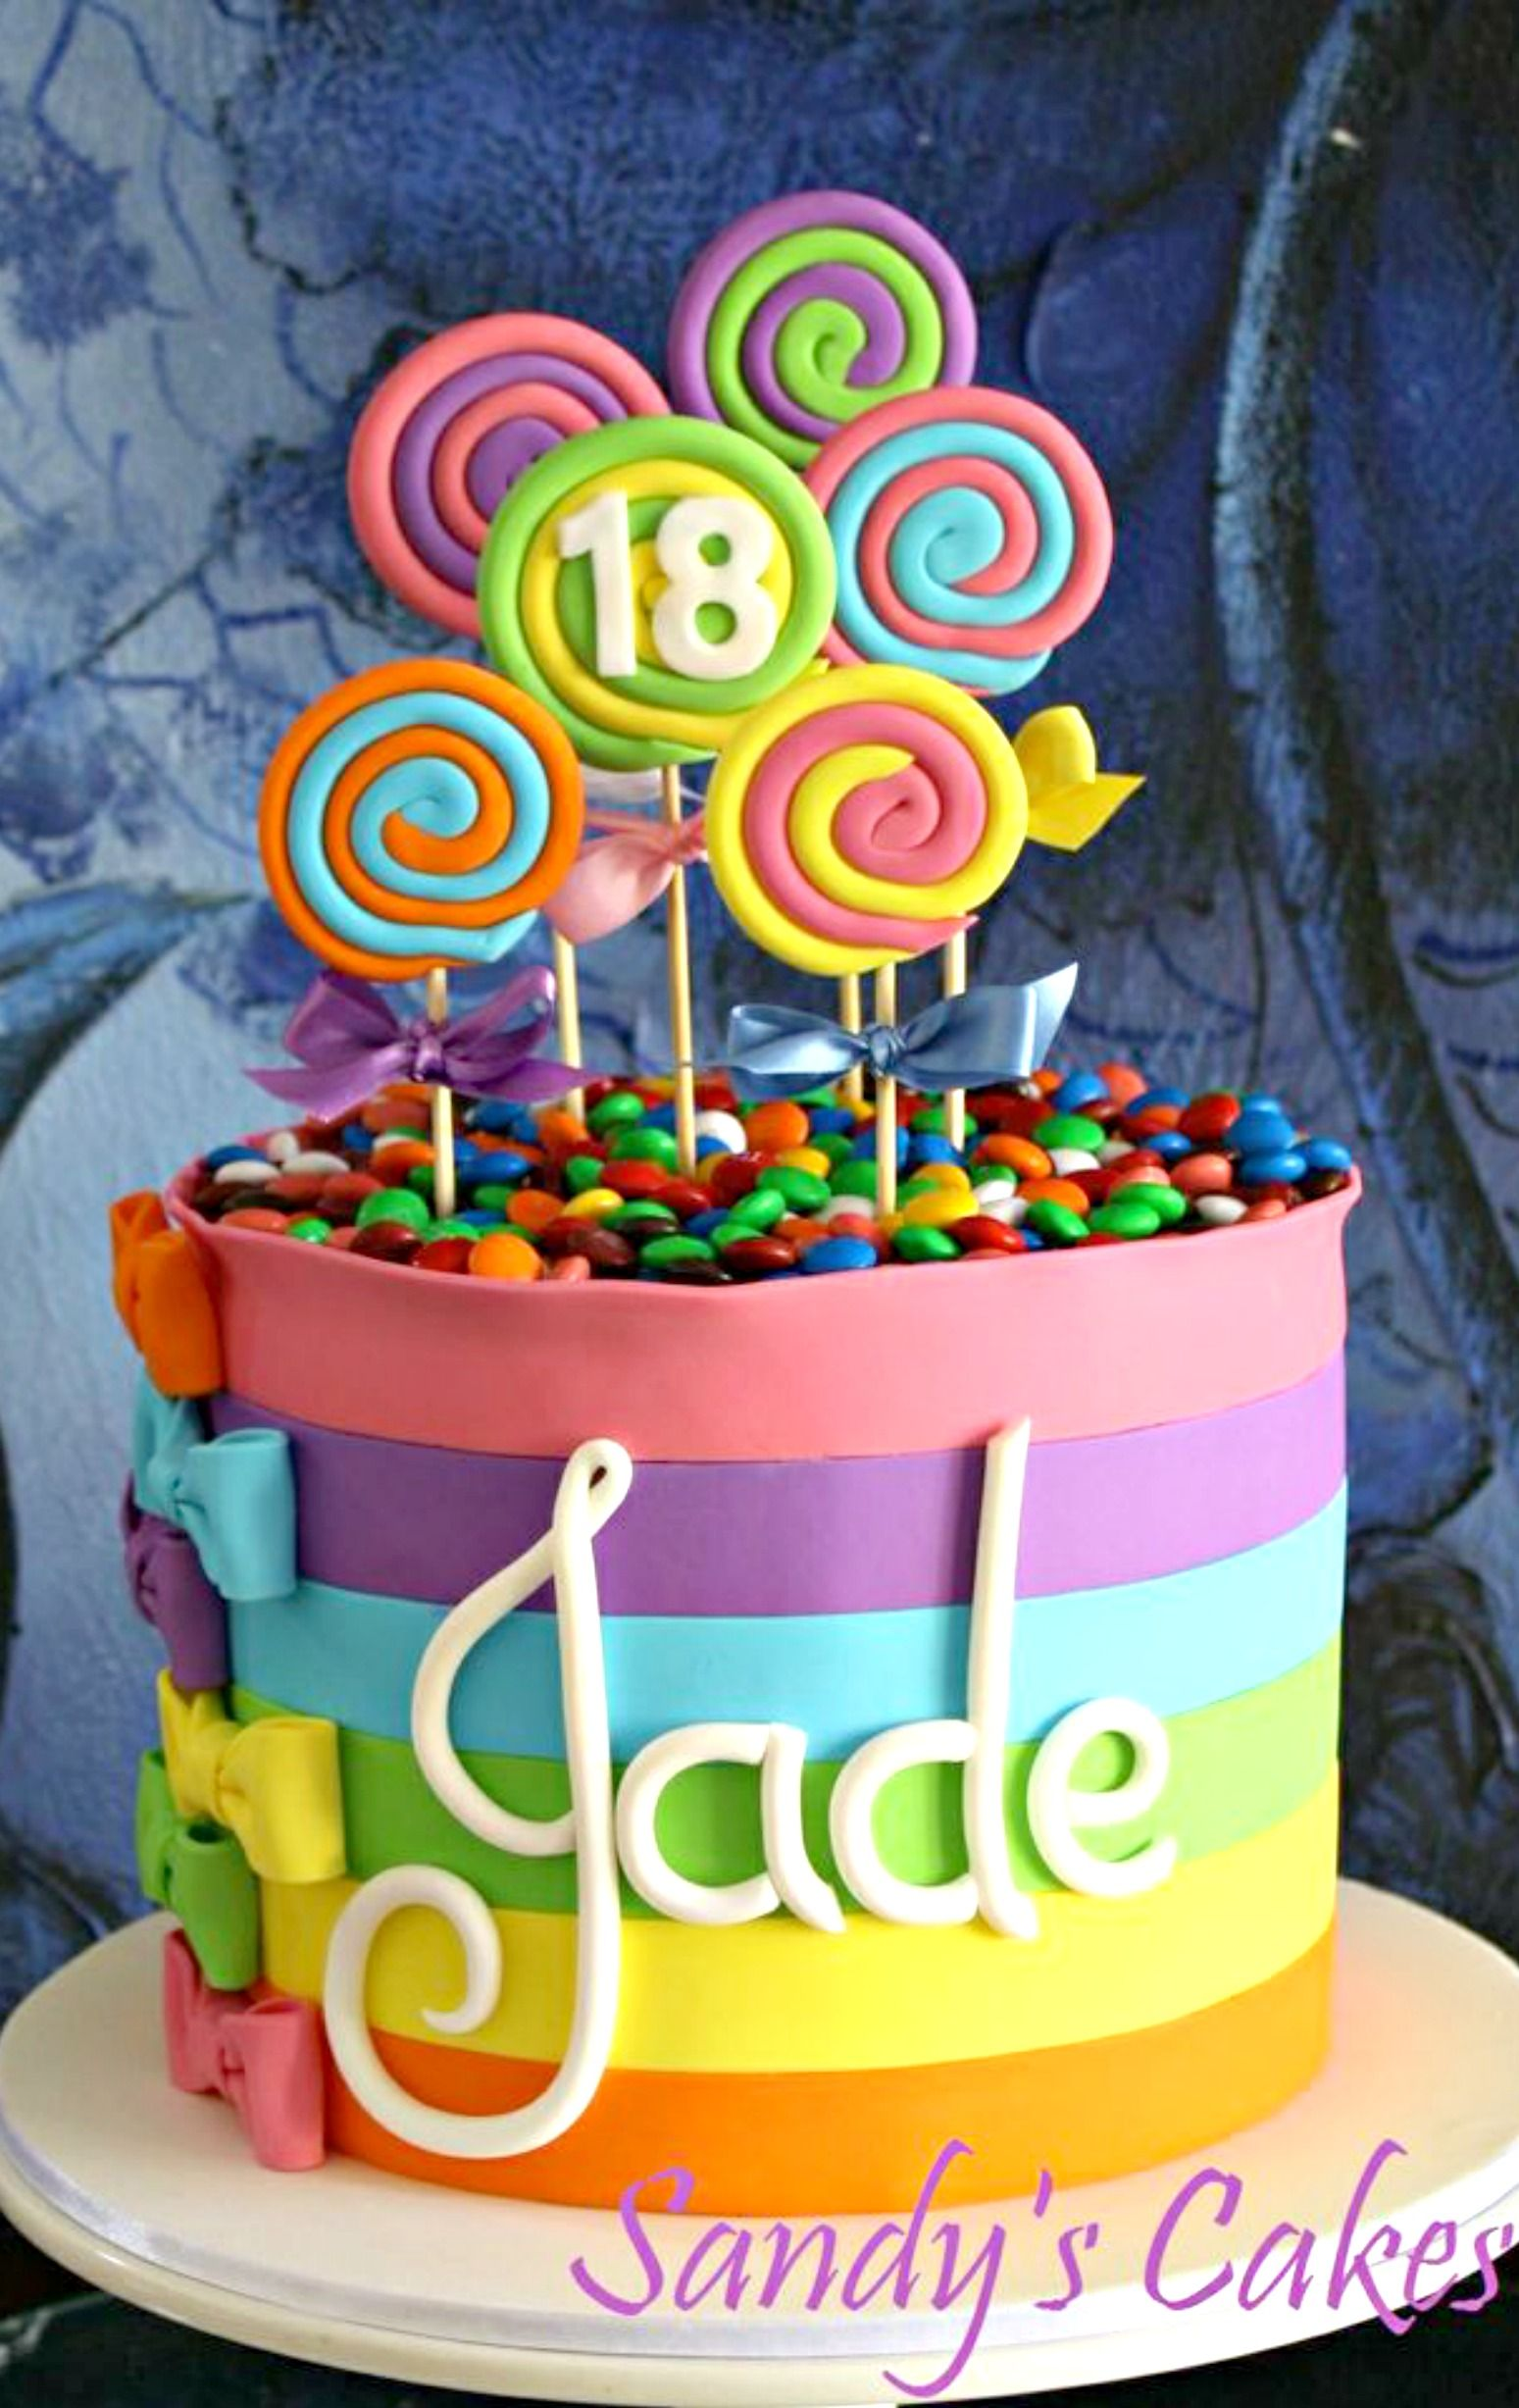 Candy Shop themed cake from Amazing Cake Ideas Inspiration